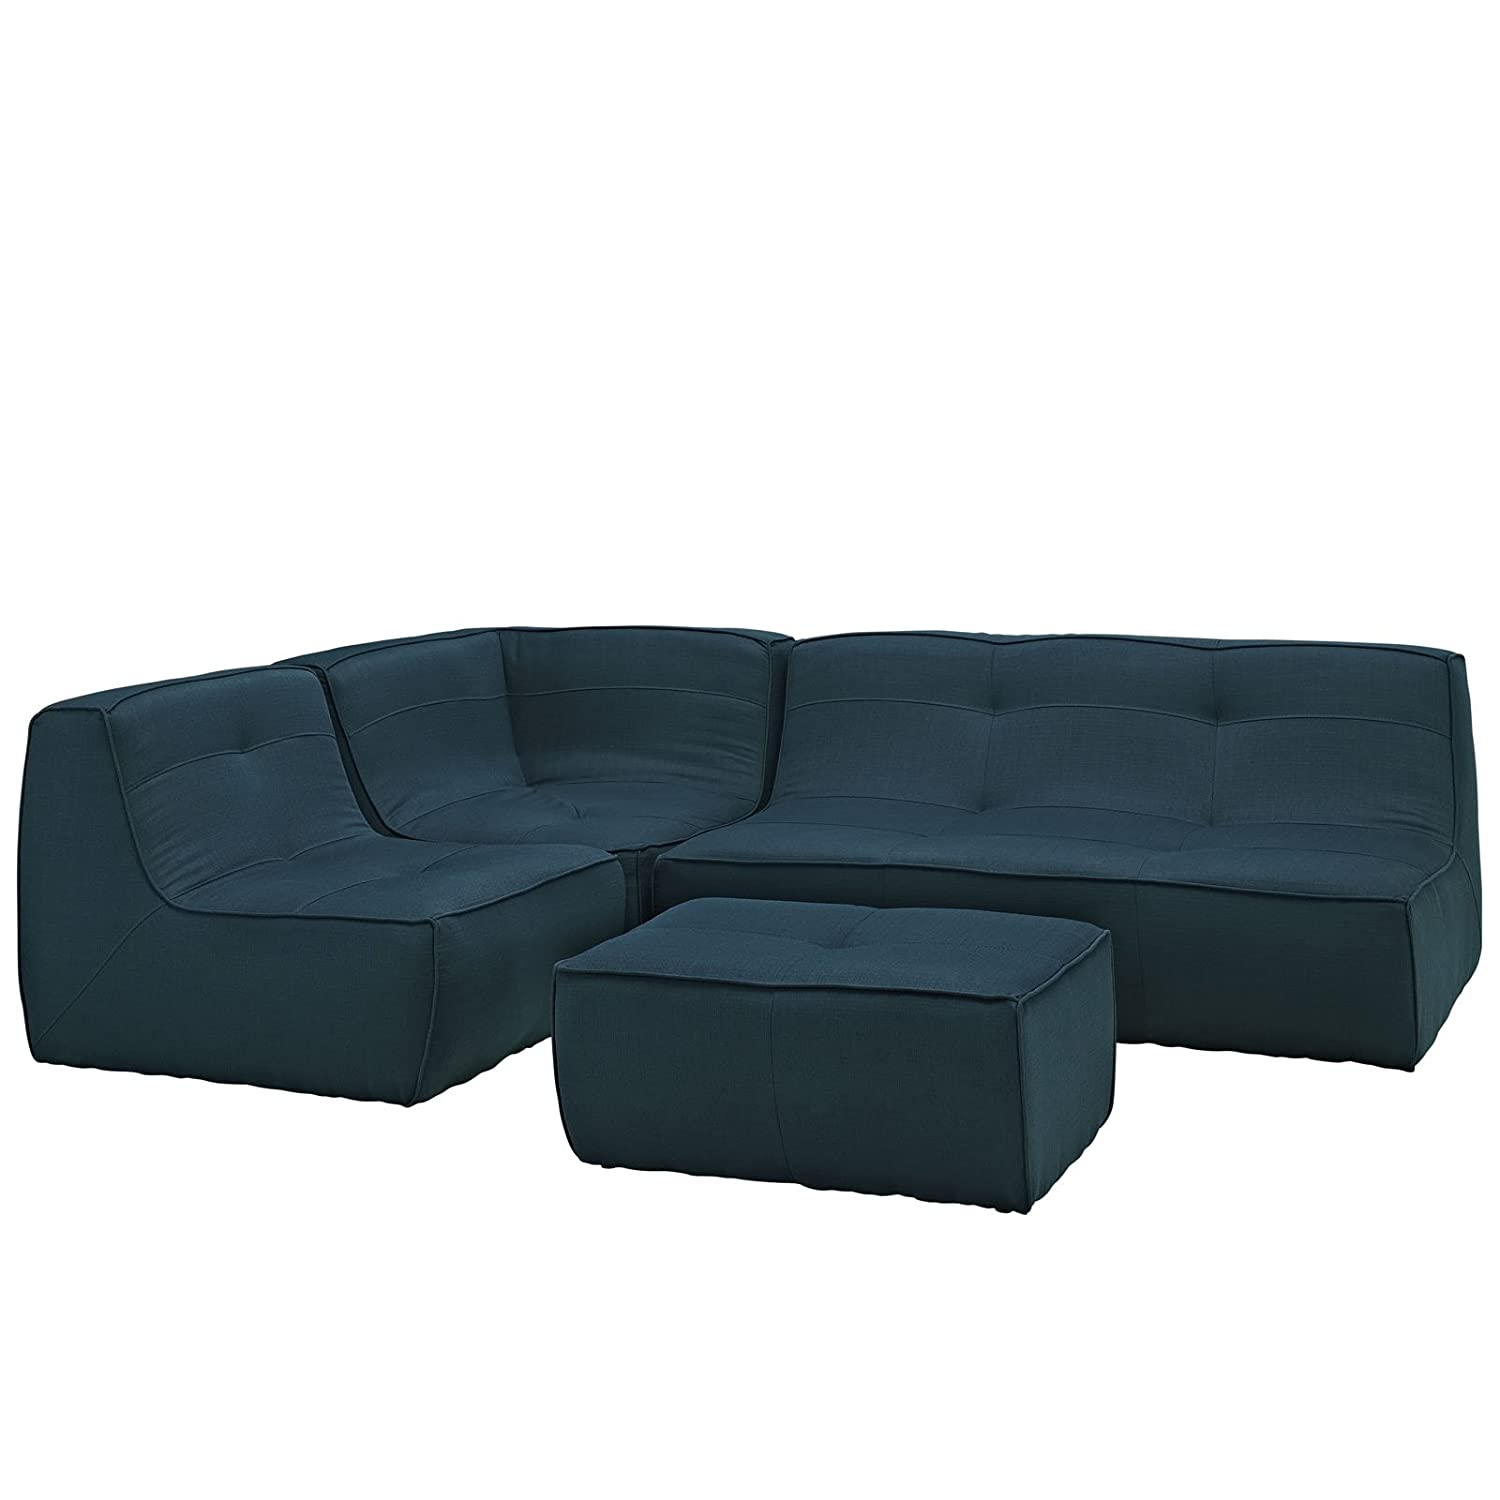 Align 4 Piece Upholstered Sectional Sofa - Azure + FREE Ebook for Modern Home Design Inspirations